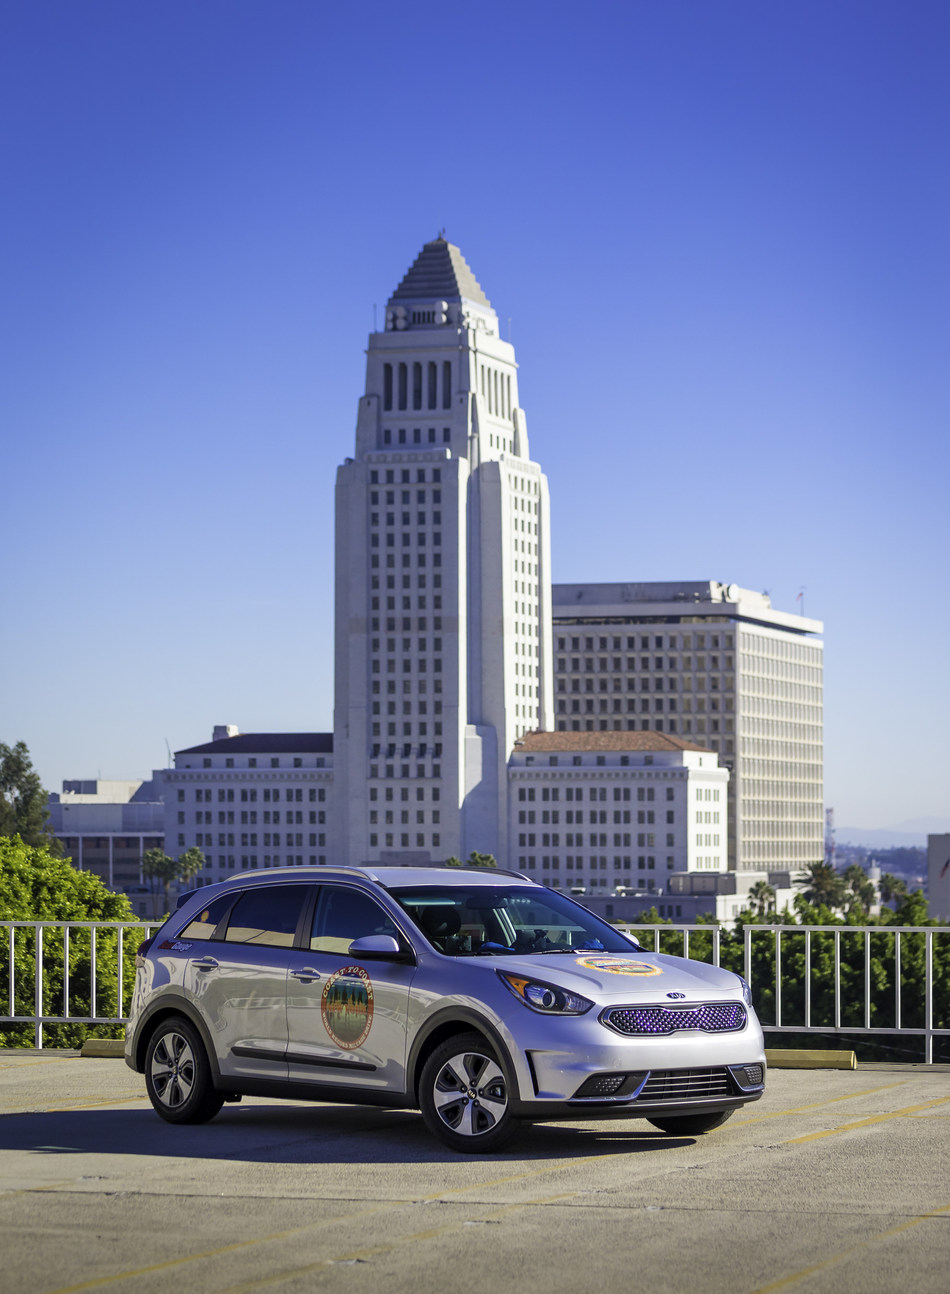 2017 Kia Niro Sets Guinness World Records(TM) Title for Lowest Fuel Consumption by a Hybrid Vehicle